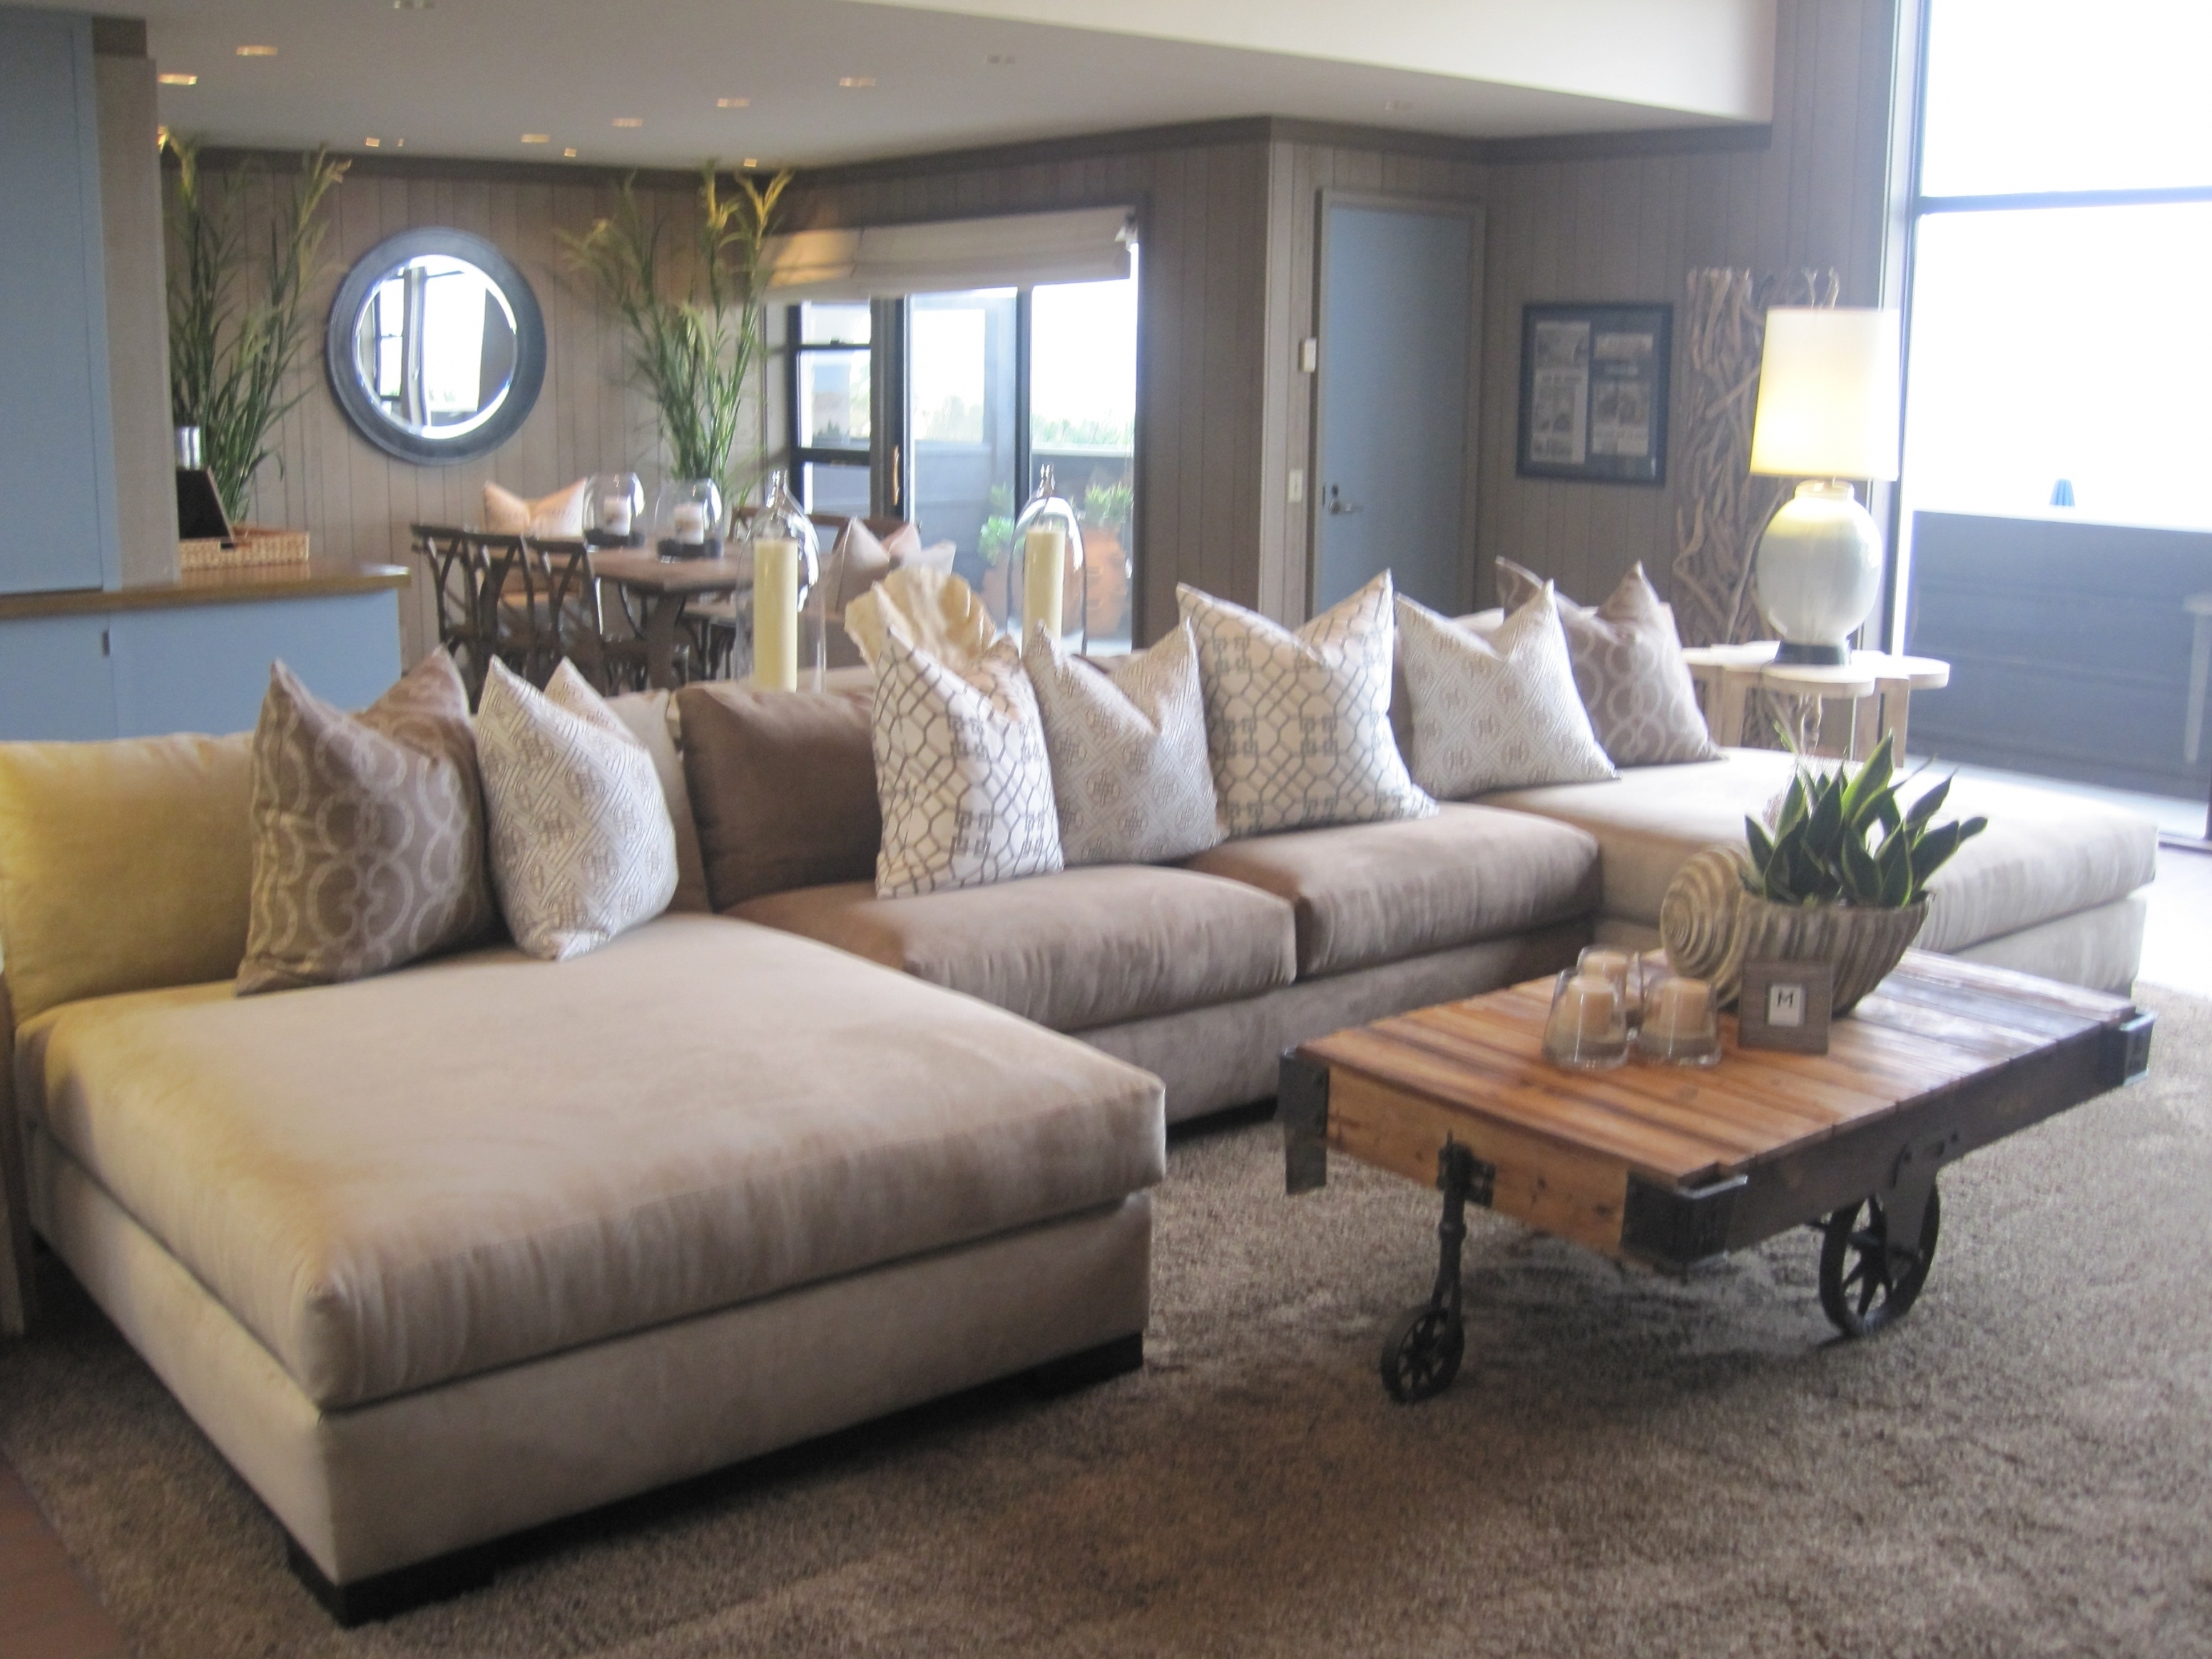 25 Best Of Images Of Double Chaise Lounge Living Room (View 11 of 15)